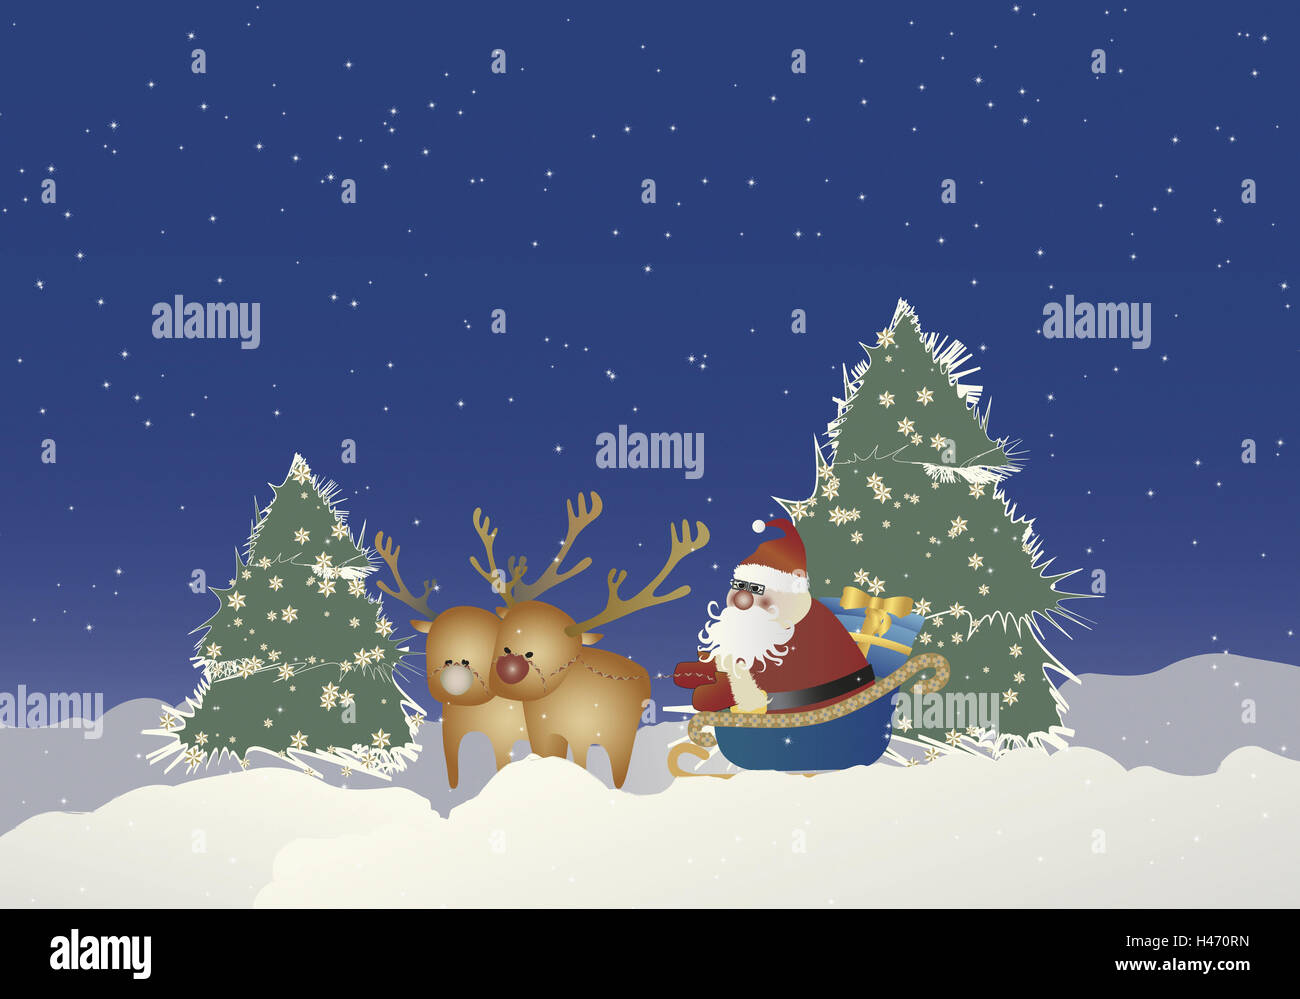 Christmas Tree Scenery Part - 37: Illustration, Santa Claus, Reindeer Sleigh, Christmas Presents, Night,  Graphics, Christmas, For Christmas, Wintry, Wood, Winter Scenery, Winter  Wood, Trees, ...